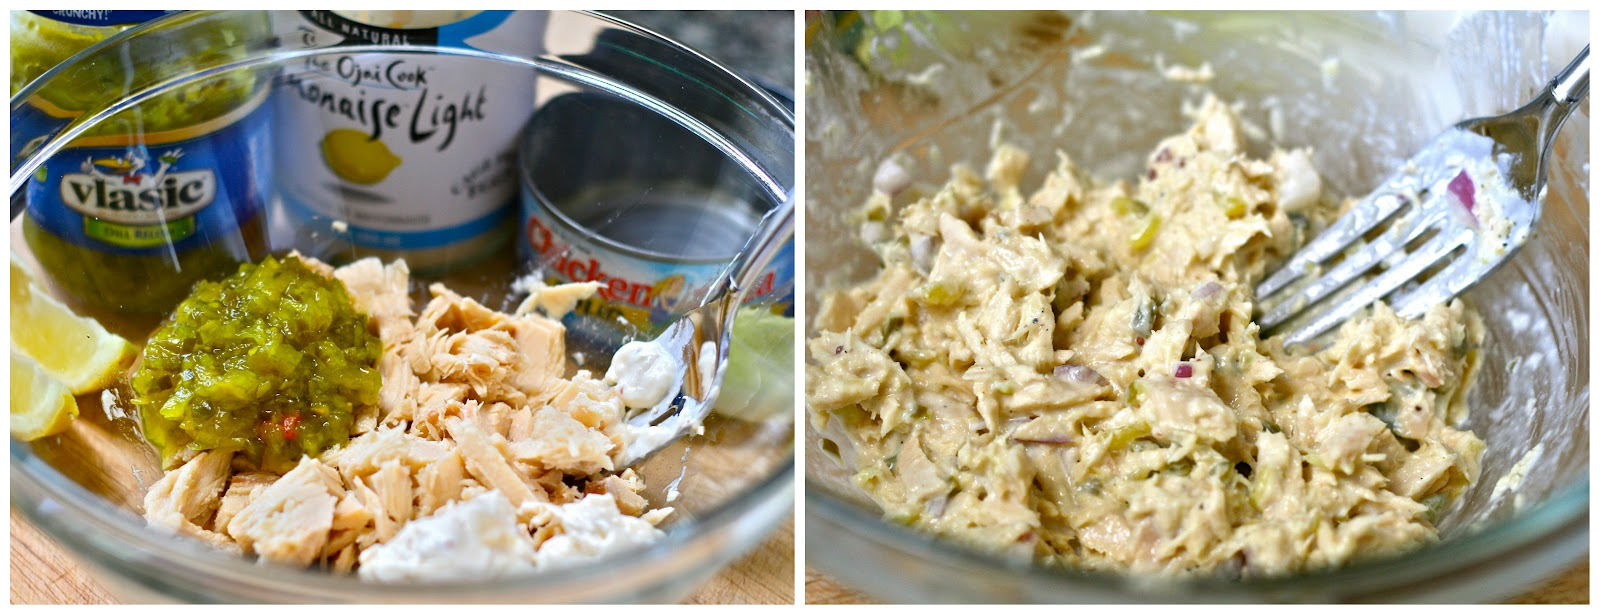 Food 23 Cool Things To Do With Canned Tuna. Canned tuna for dinner is often an act of desperation. I think it's time to change that.